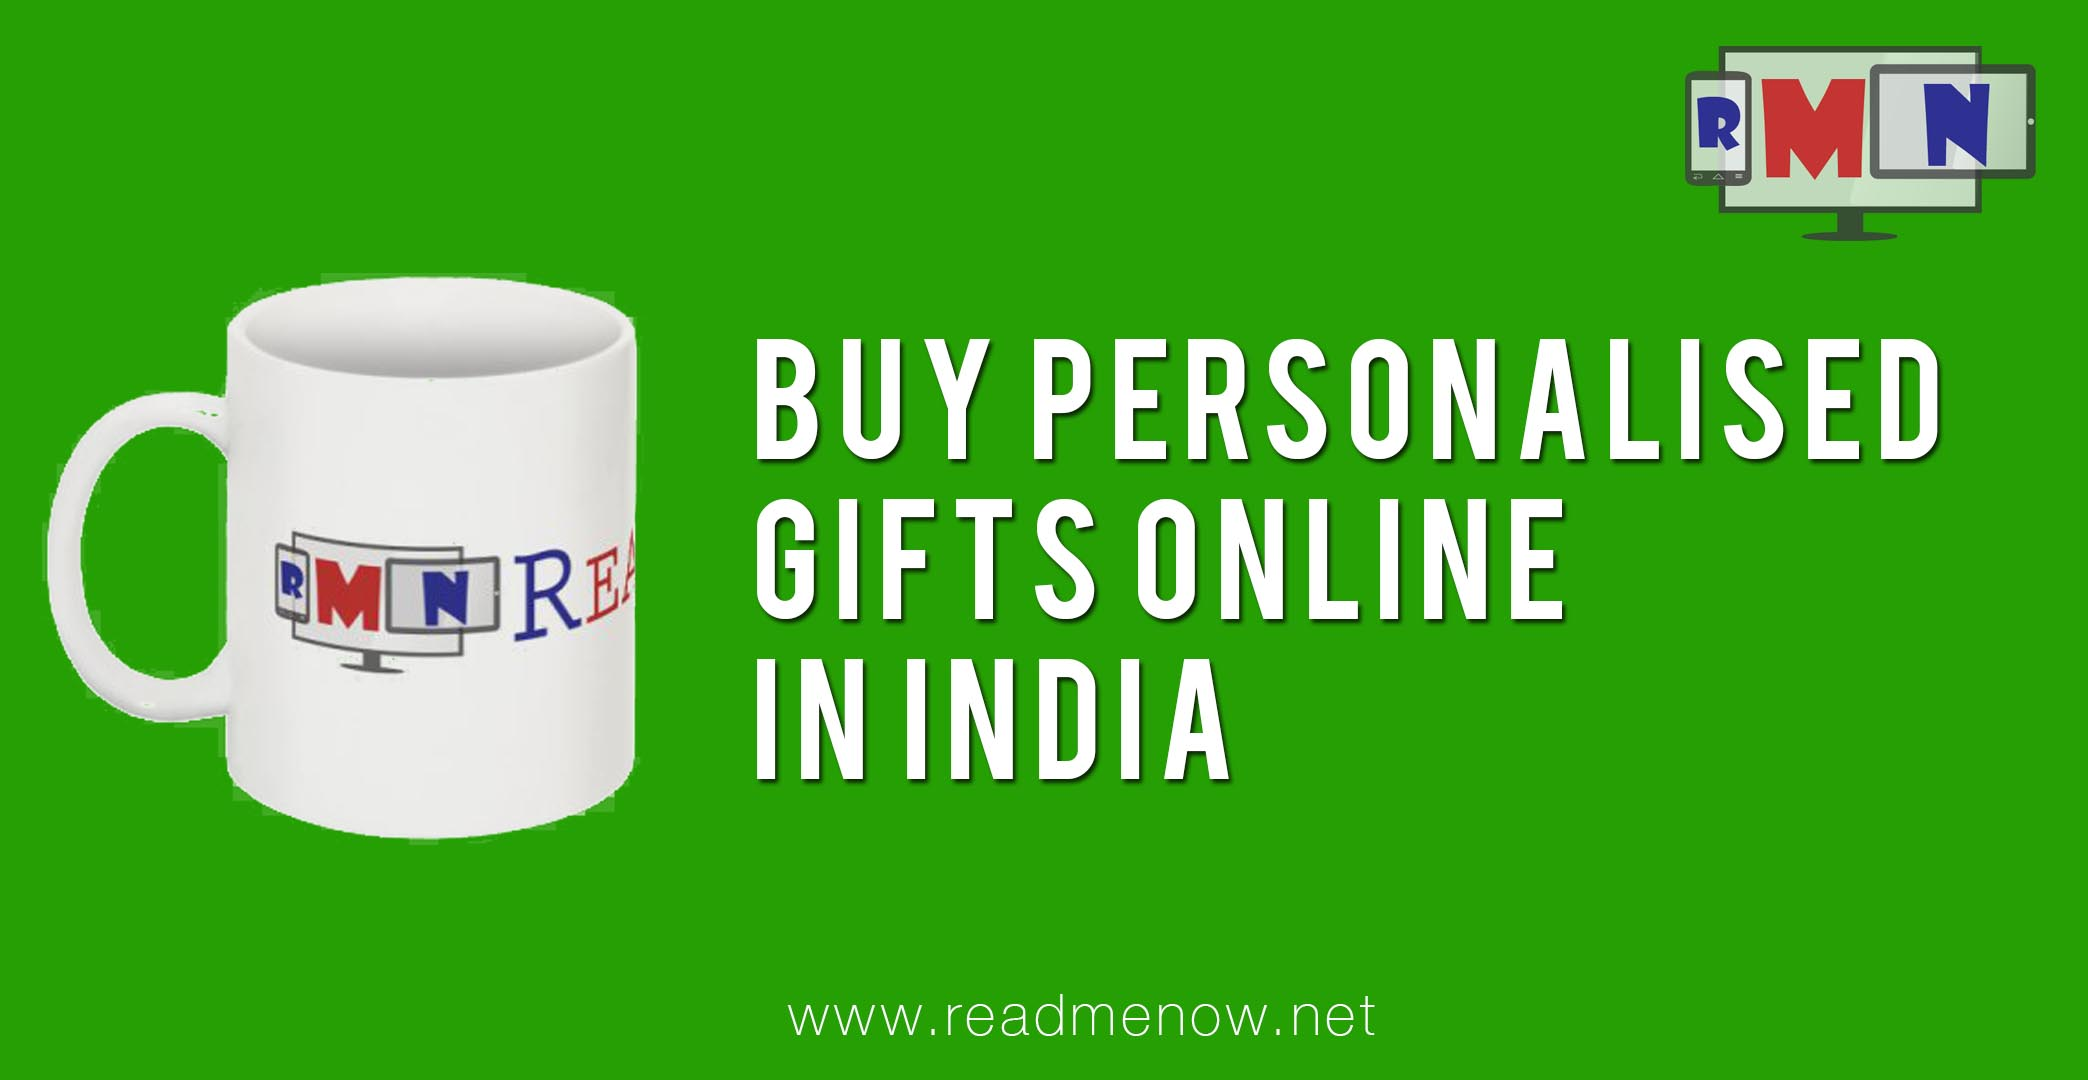 Buying Personalised Gifts Online in India